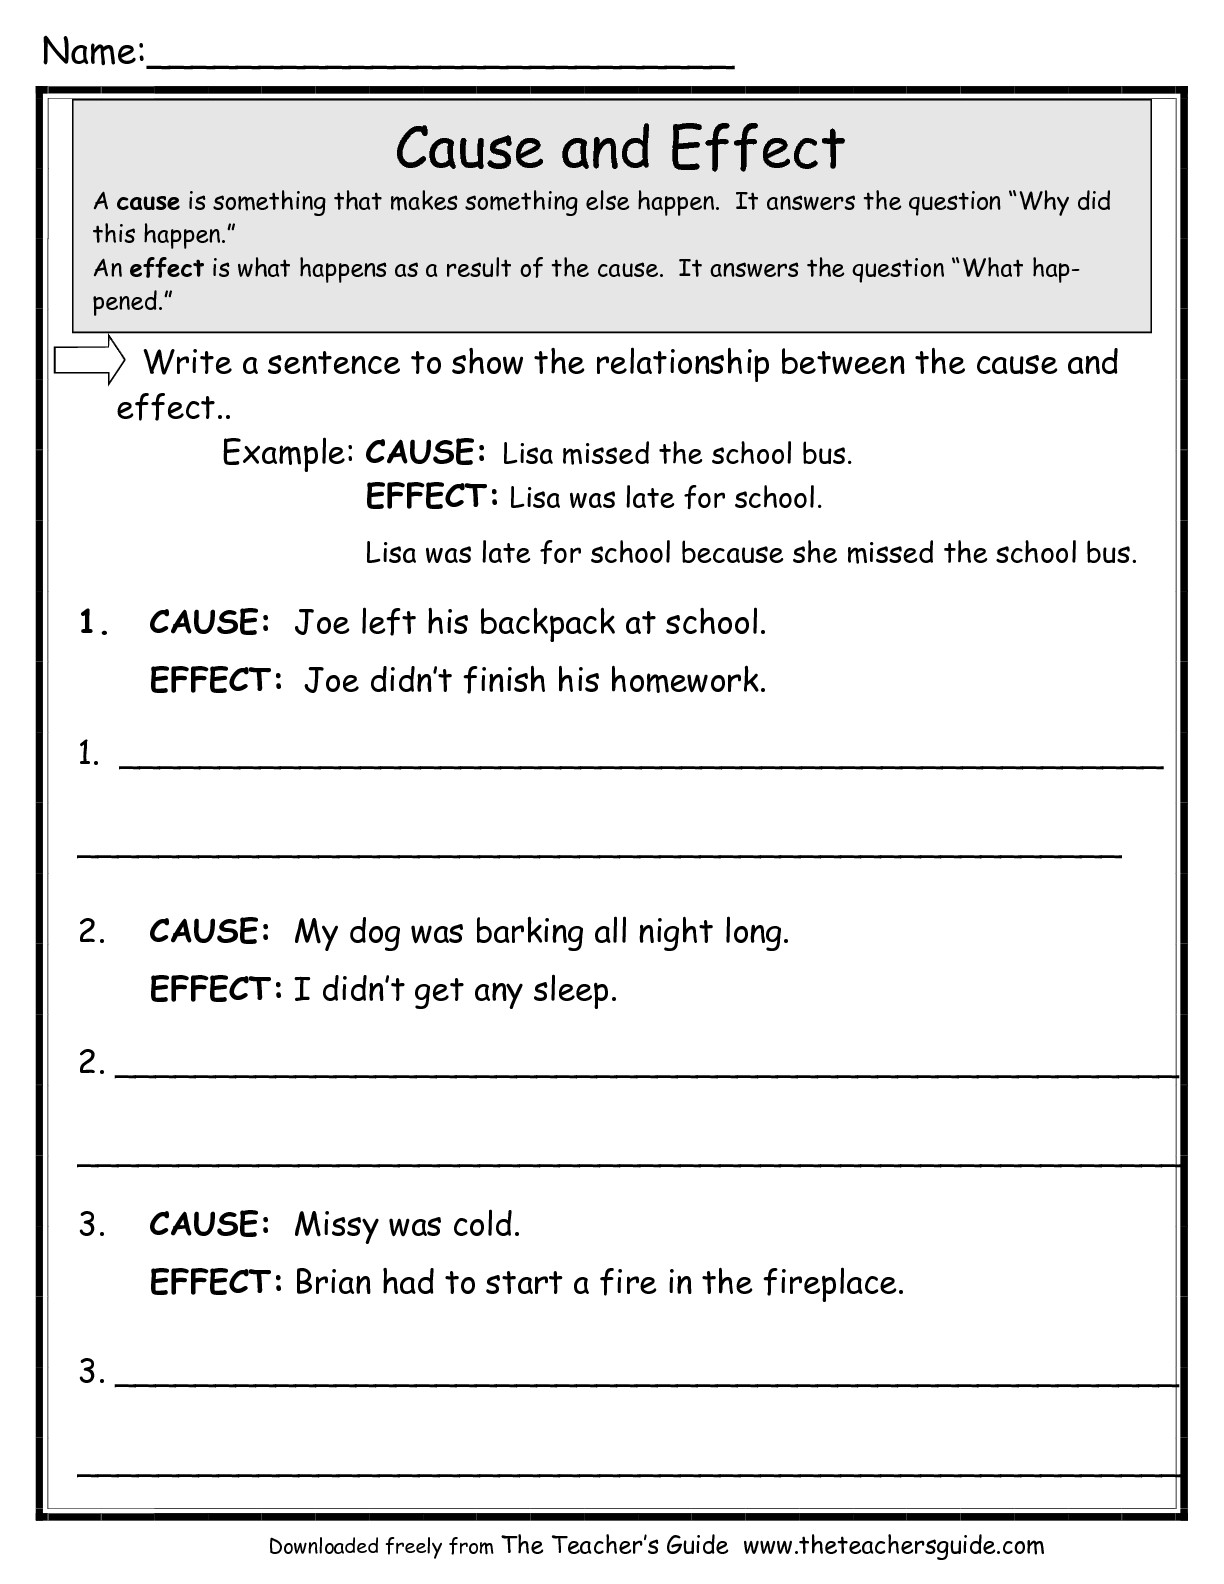 Worksheet Reading Comprehension 3rd Grade Free worksheet 3rd grade comprehension mikyu free printable reading worksheets for 7 best images of